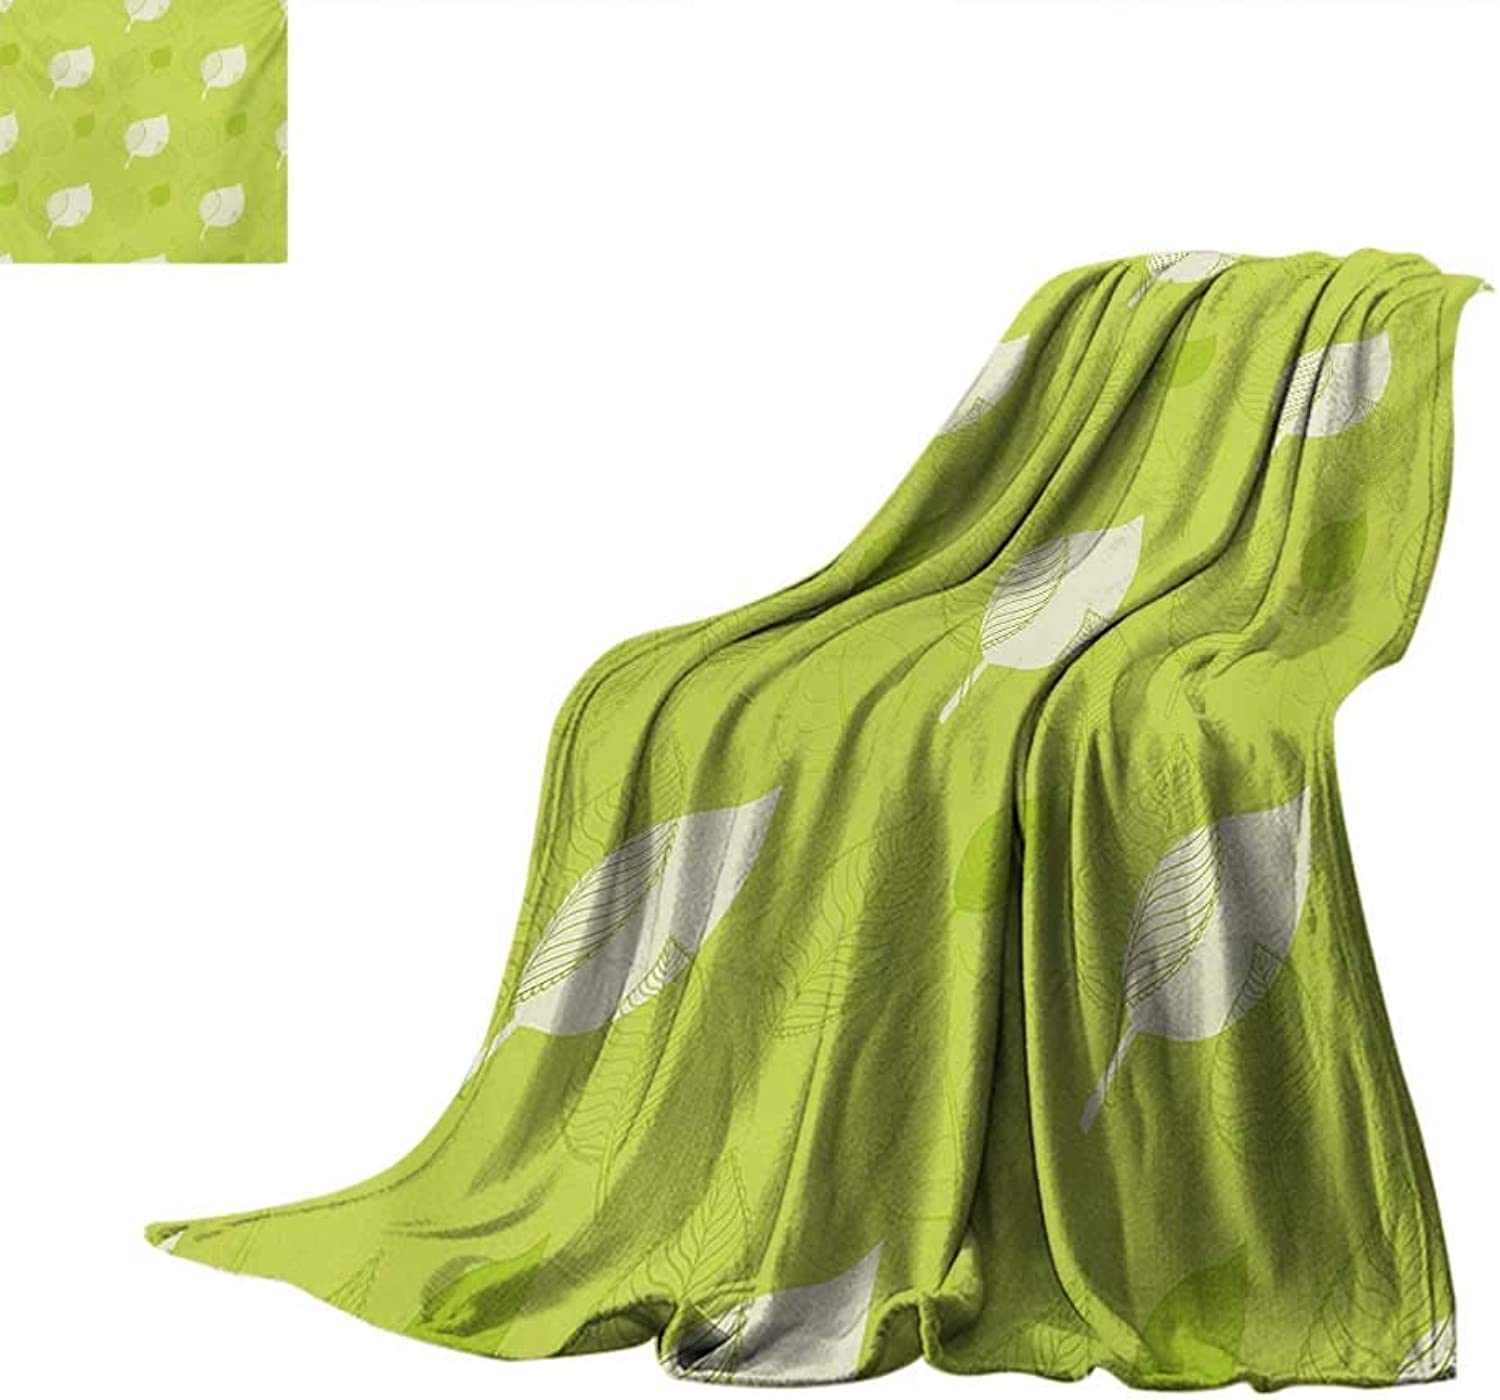 Leafsmall blanketTransparent Retro Autumn Leaves with Classical Old Fashioned Artful Design Artworkthin Blanket 80 x60  Green Cream